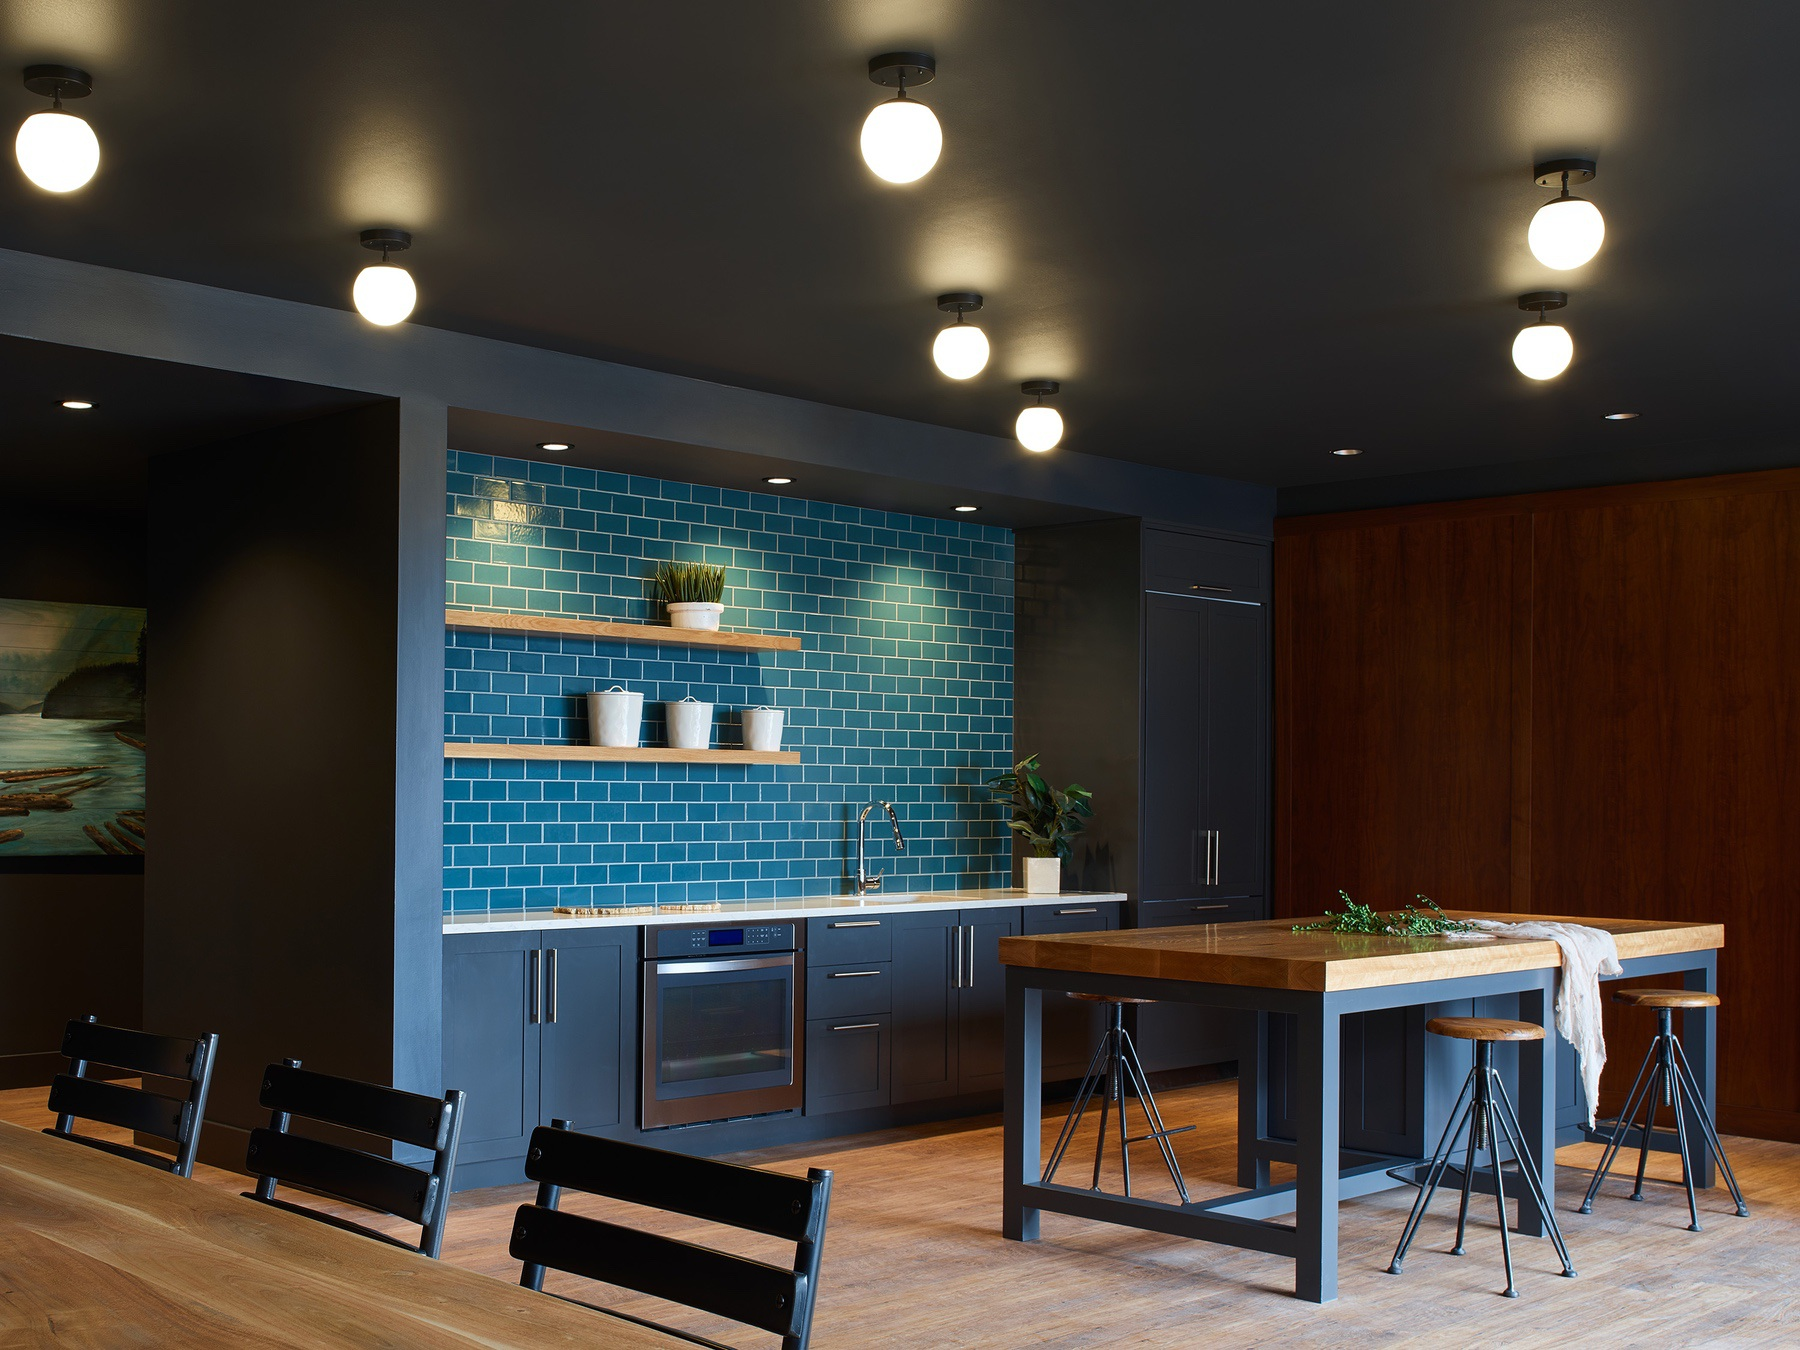 The Union at St. Johns Multifamily Housing interior common area with kitchen view and tile accent wall